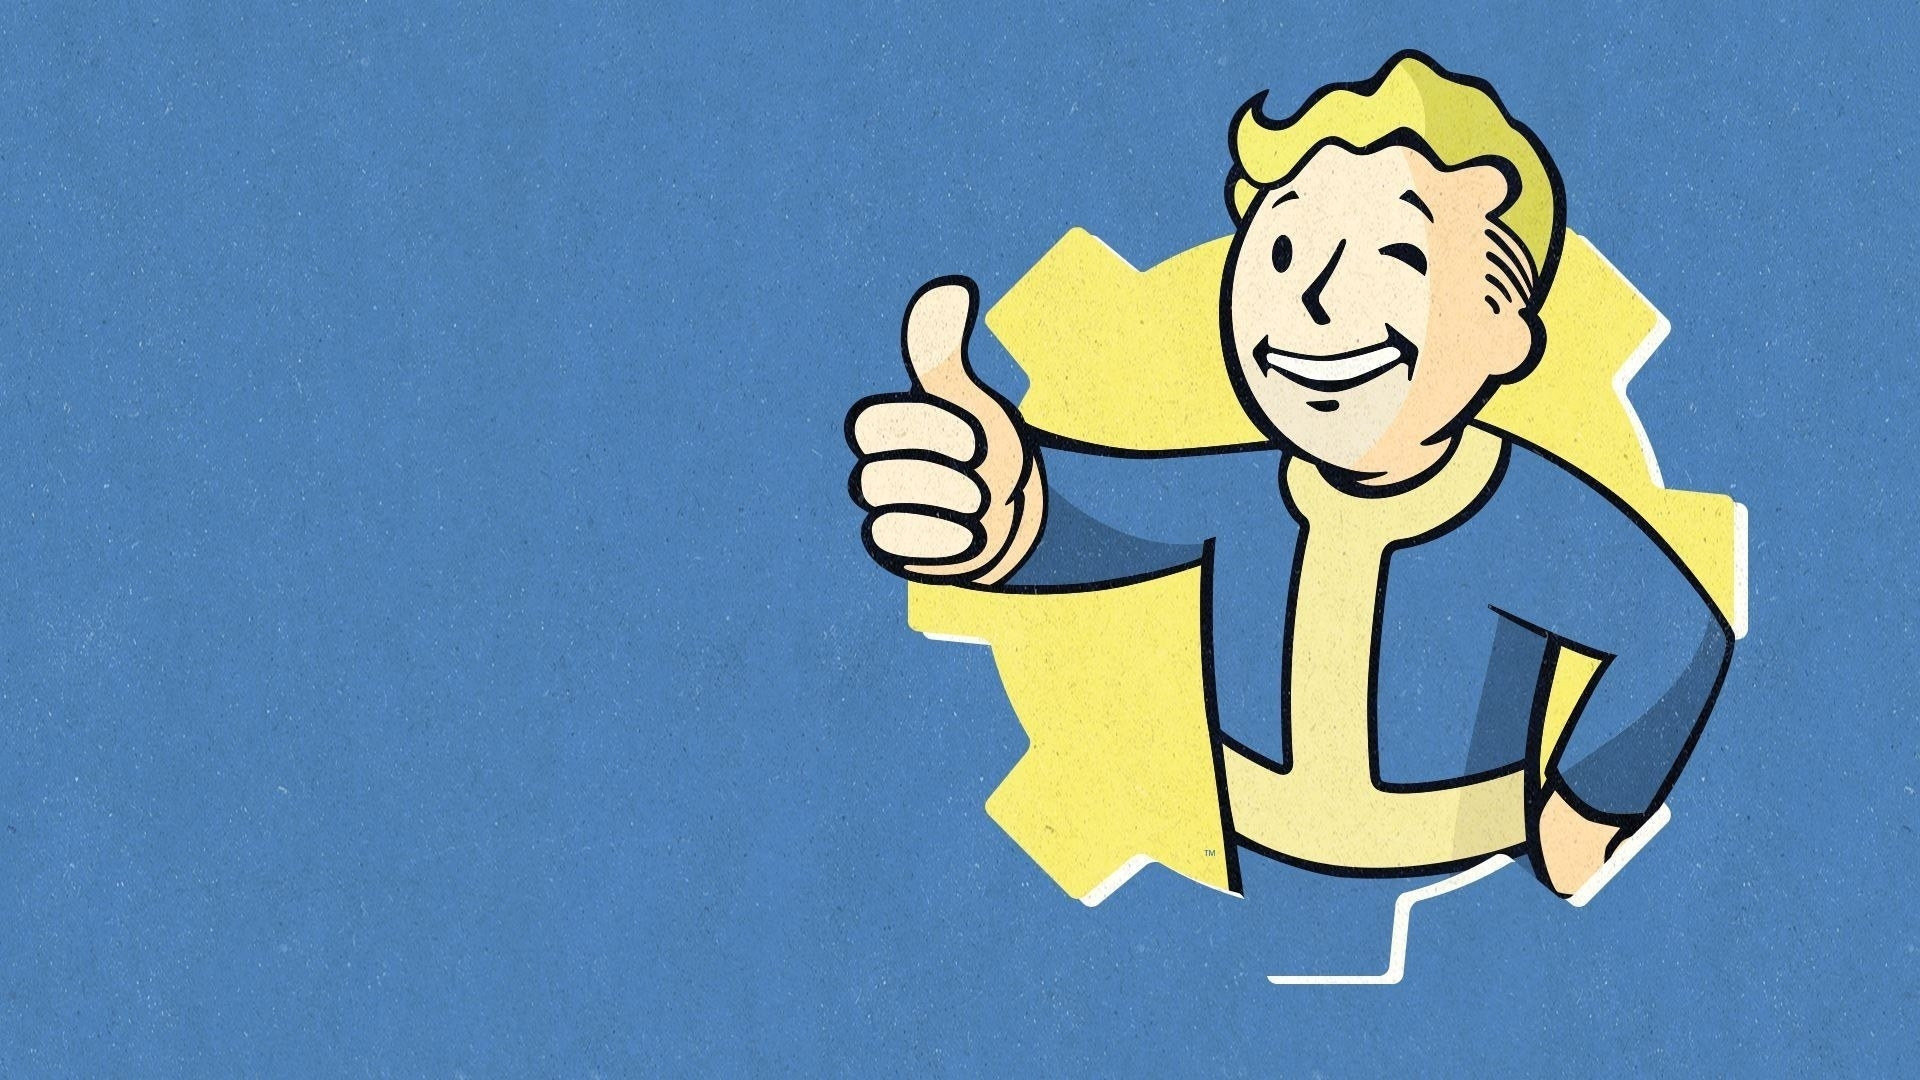 10 Top Fallout Vault Boy Backgrounds FULL HD 1920×1080 For PC Background